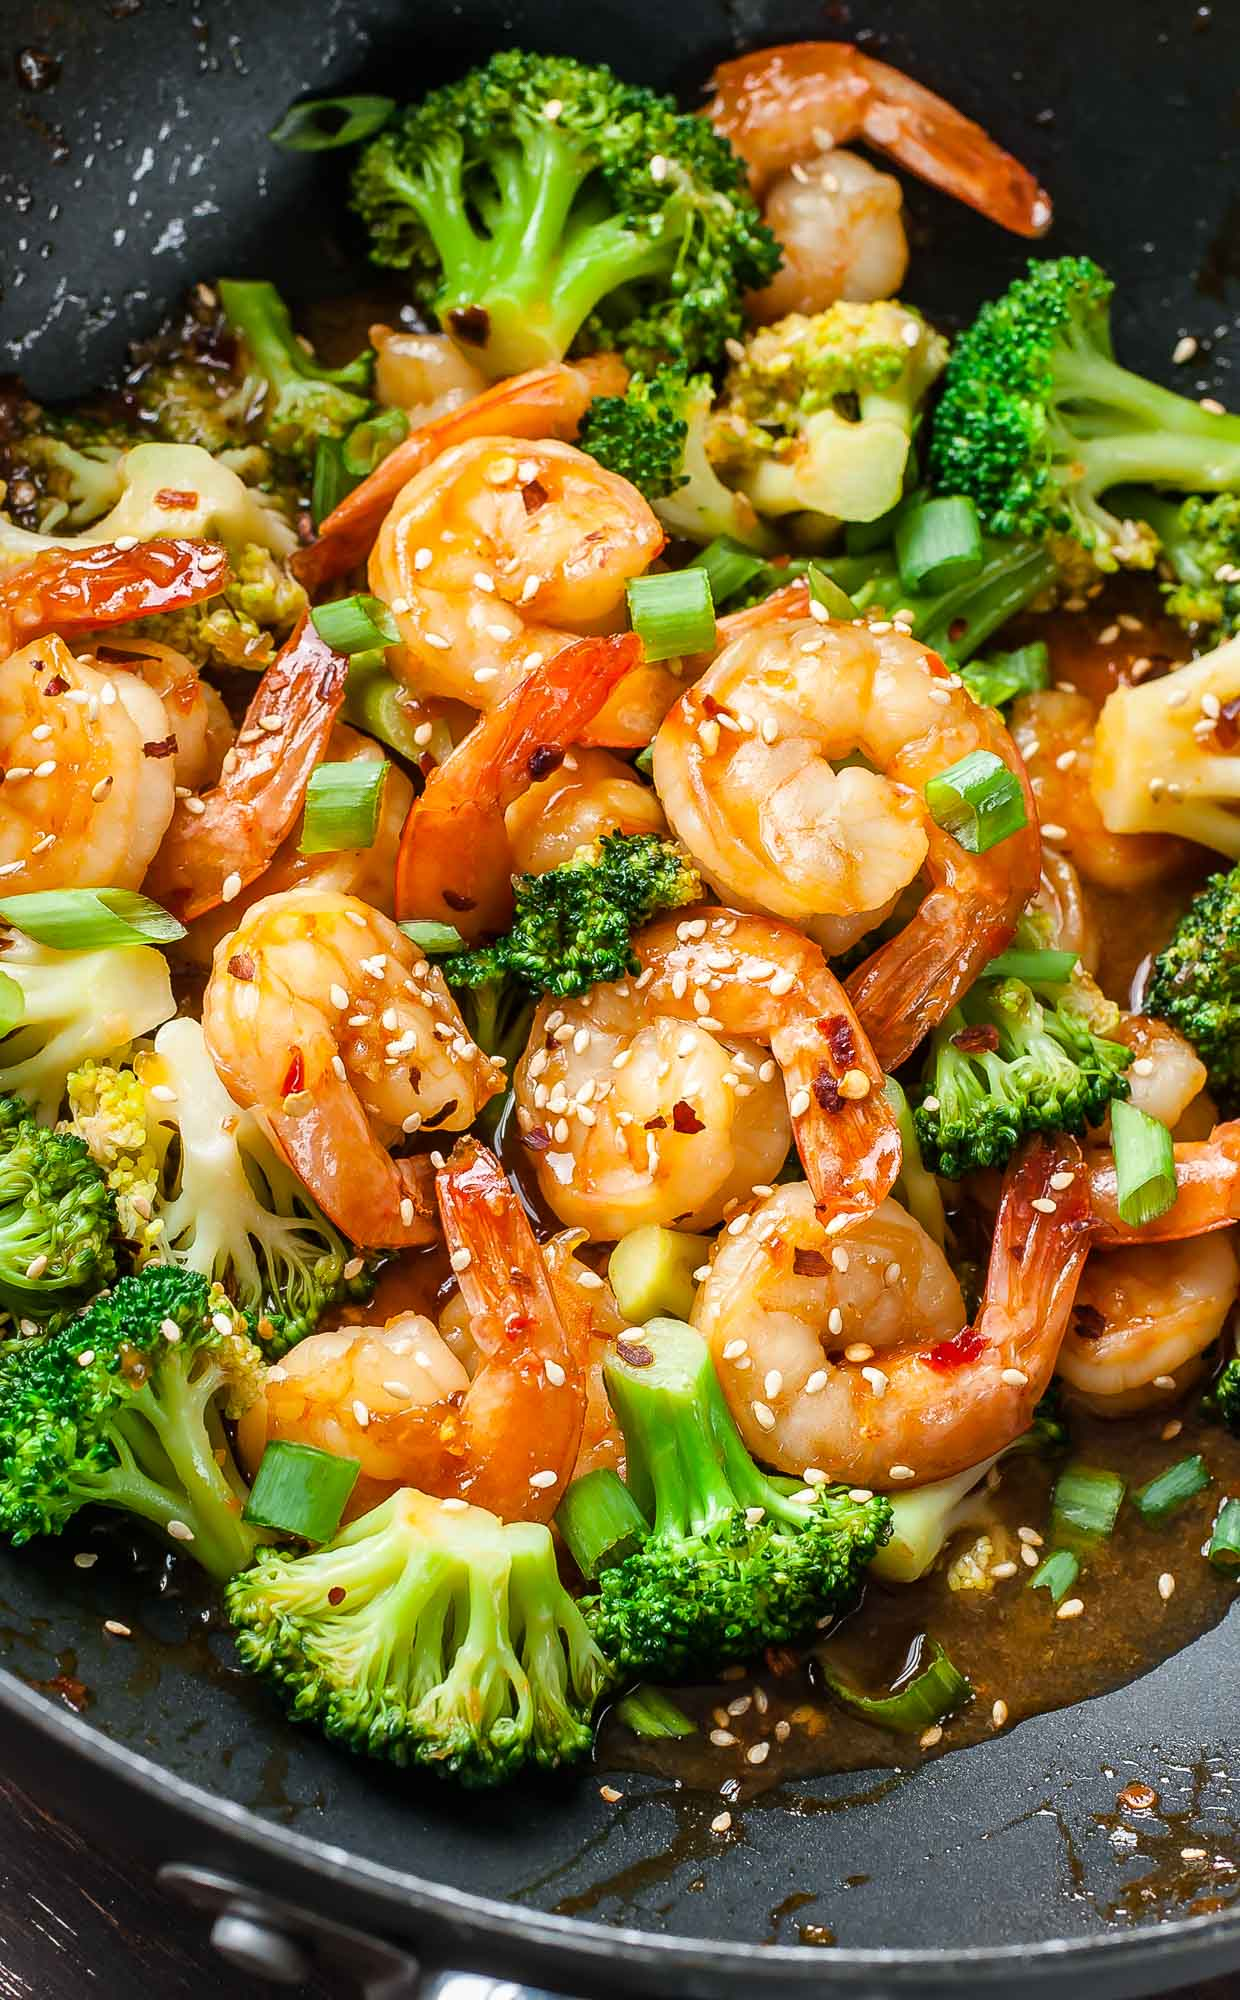 This Copycat Szechuan Shrimp And Broccoli Recipe Is Ridiculously Tasty Ready In Just 20 Minutes